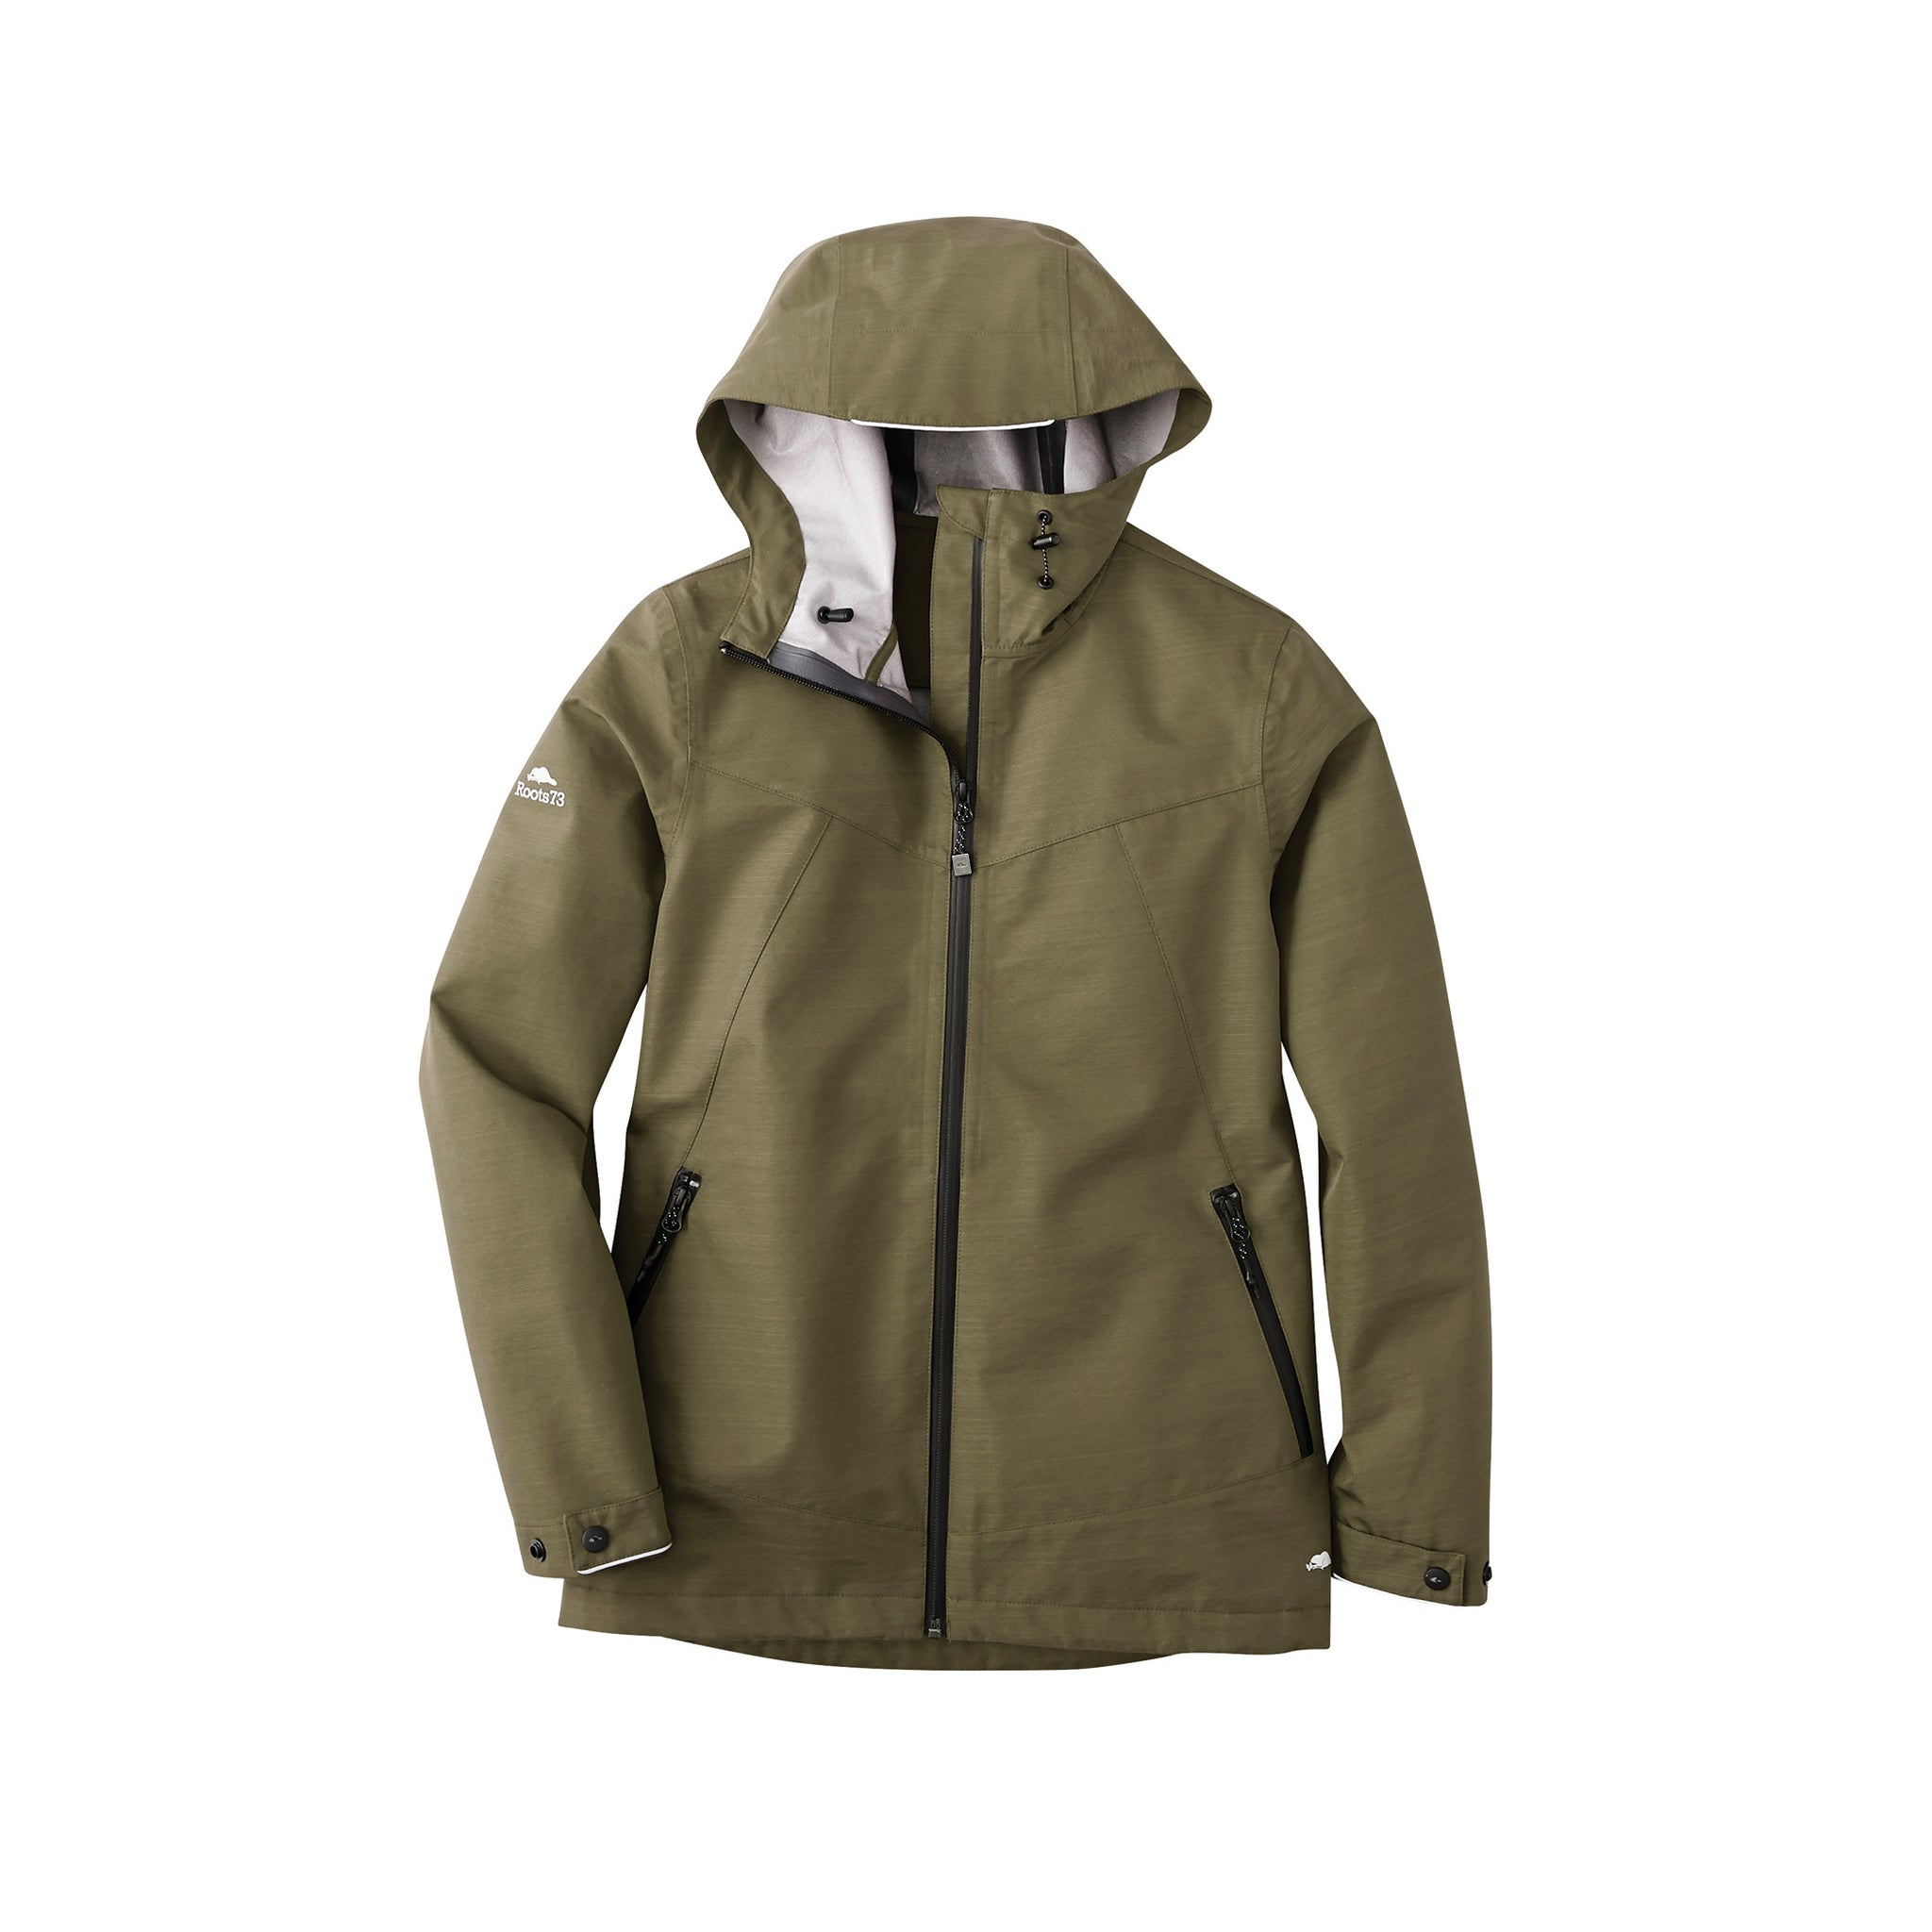 ROOTS73 LADIES SHORELINE SOFT SHELL JACKET